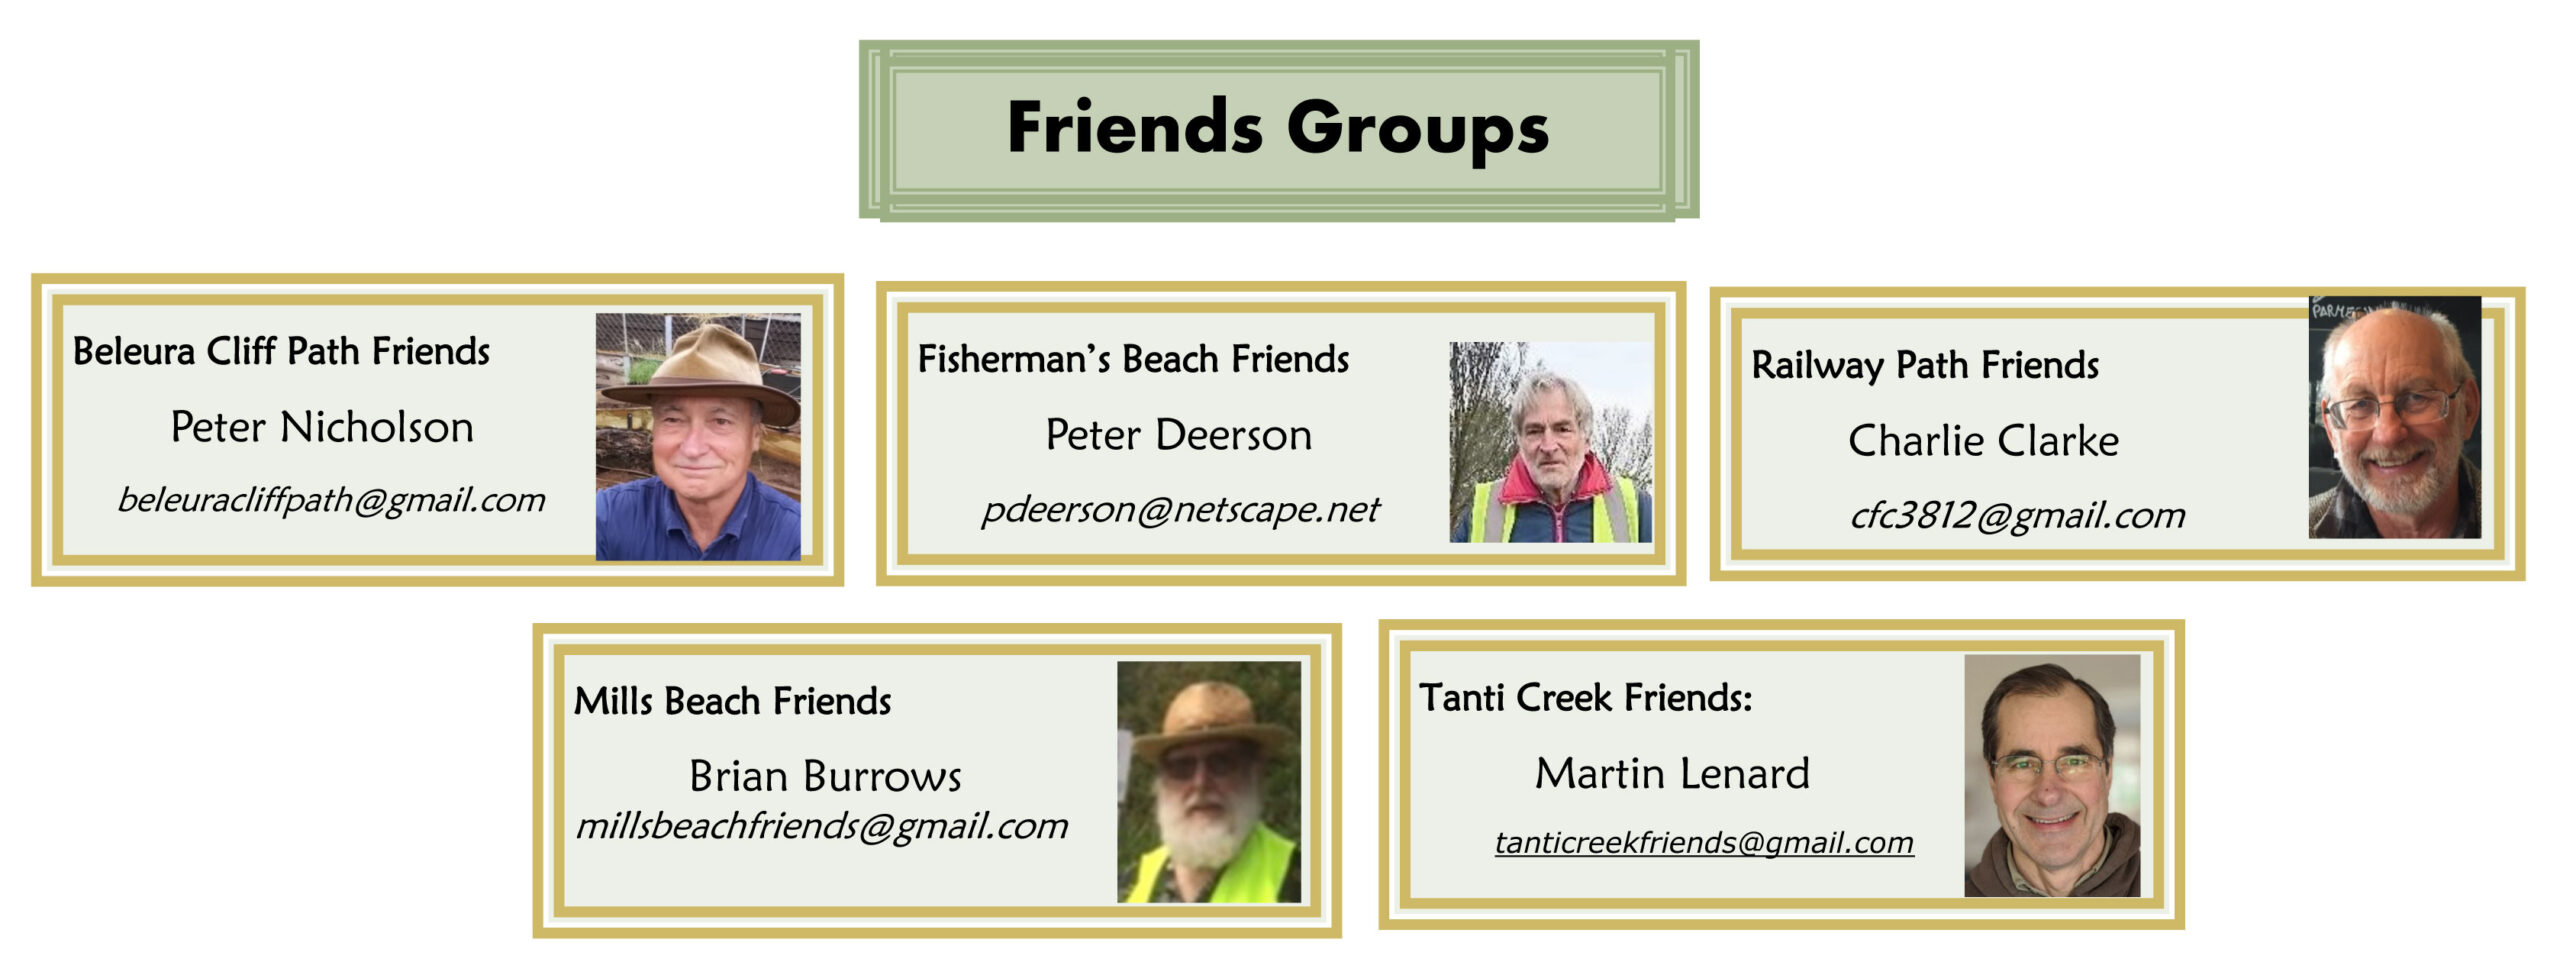 Friends Groups contact information